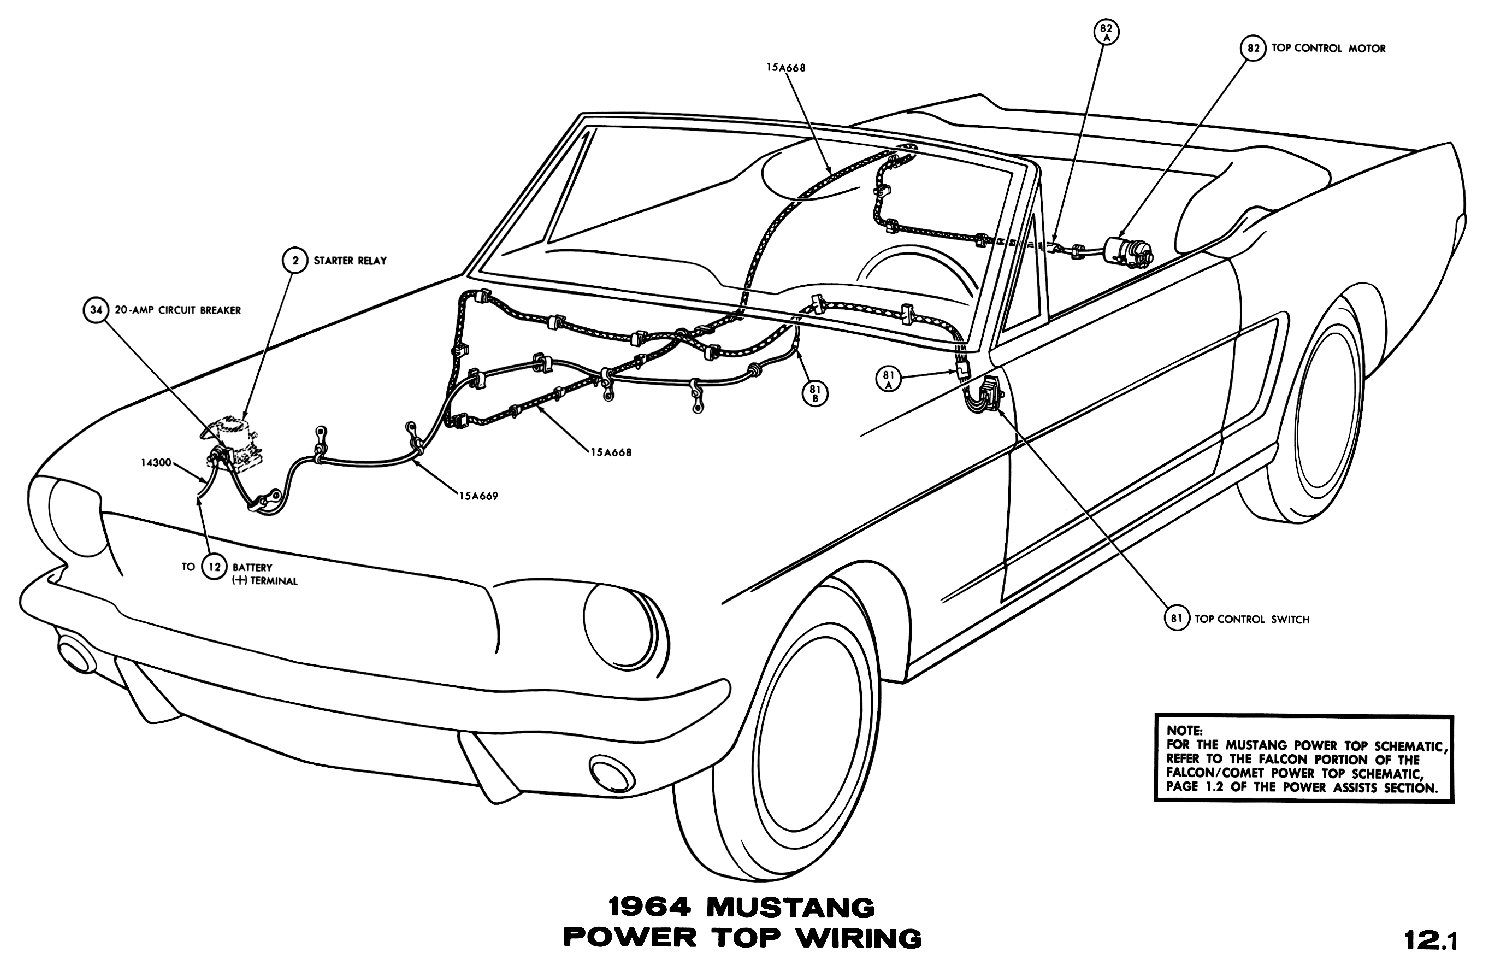 1964 Mustang Wiring Diagrams Average Joe Restoration Hot Water Heater Diagram Harness Power Top Pictorial Or Schematic